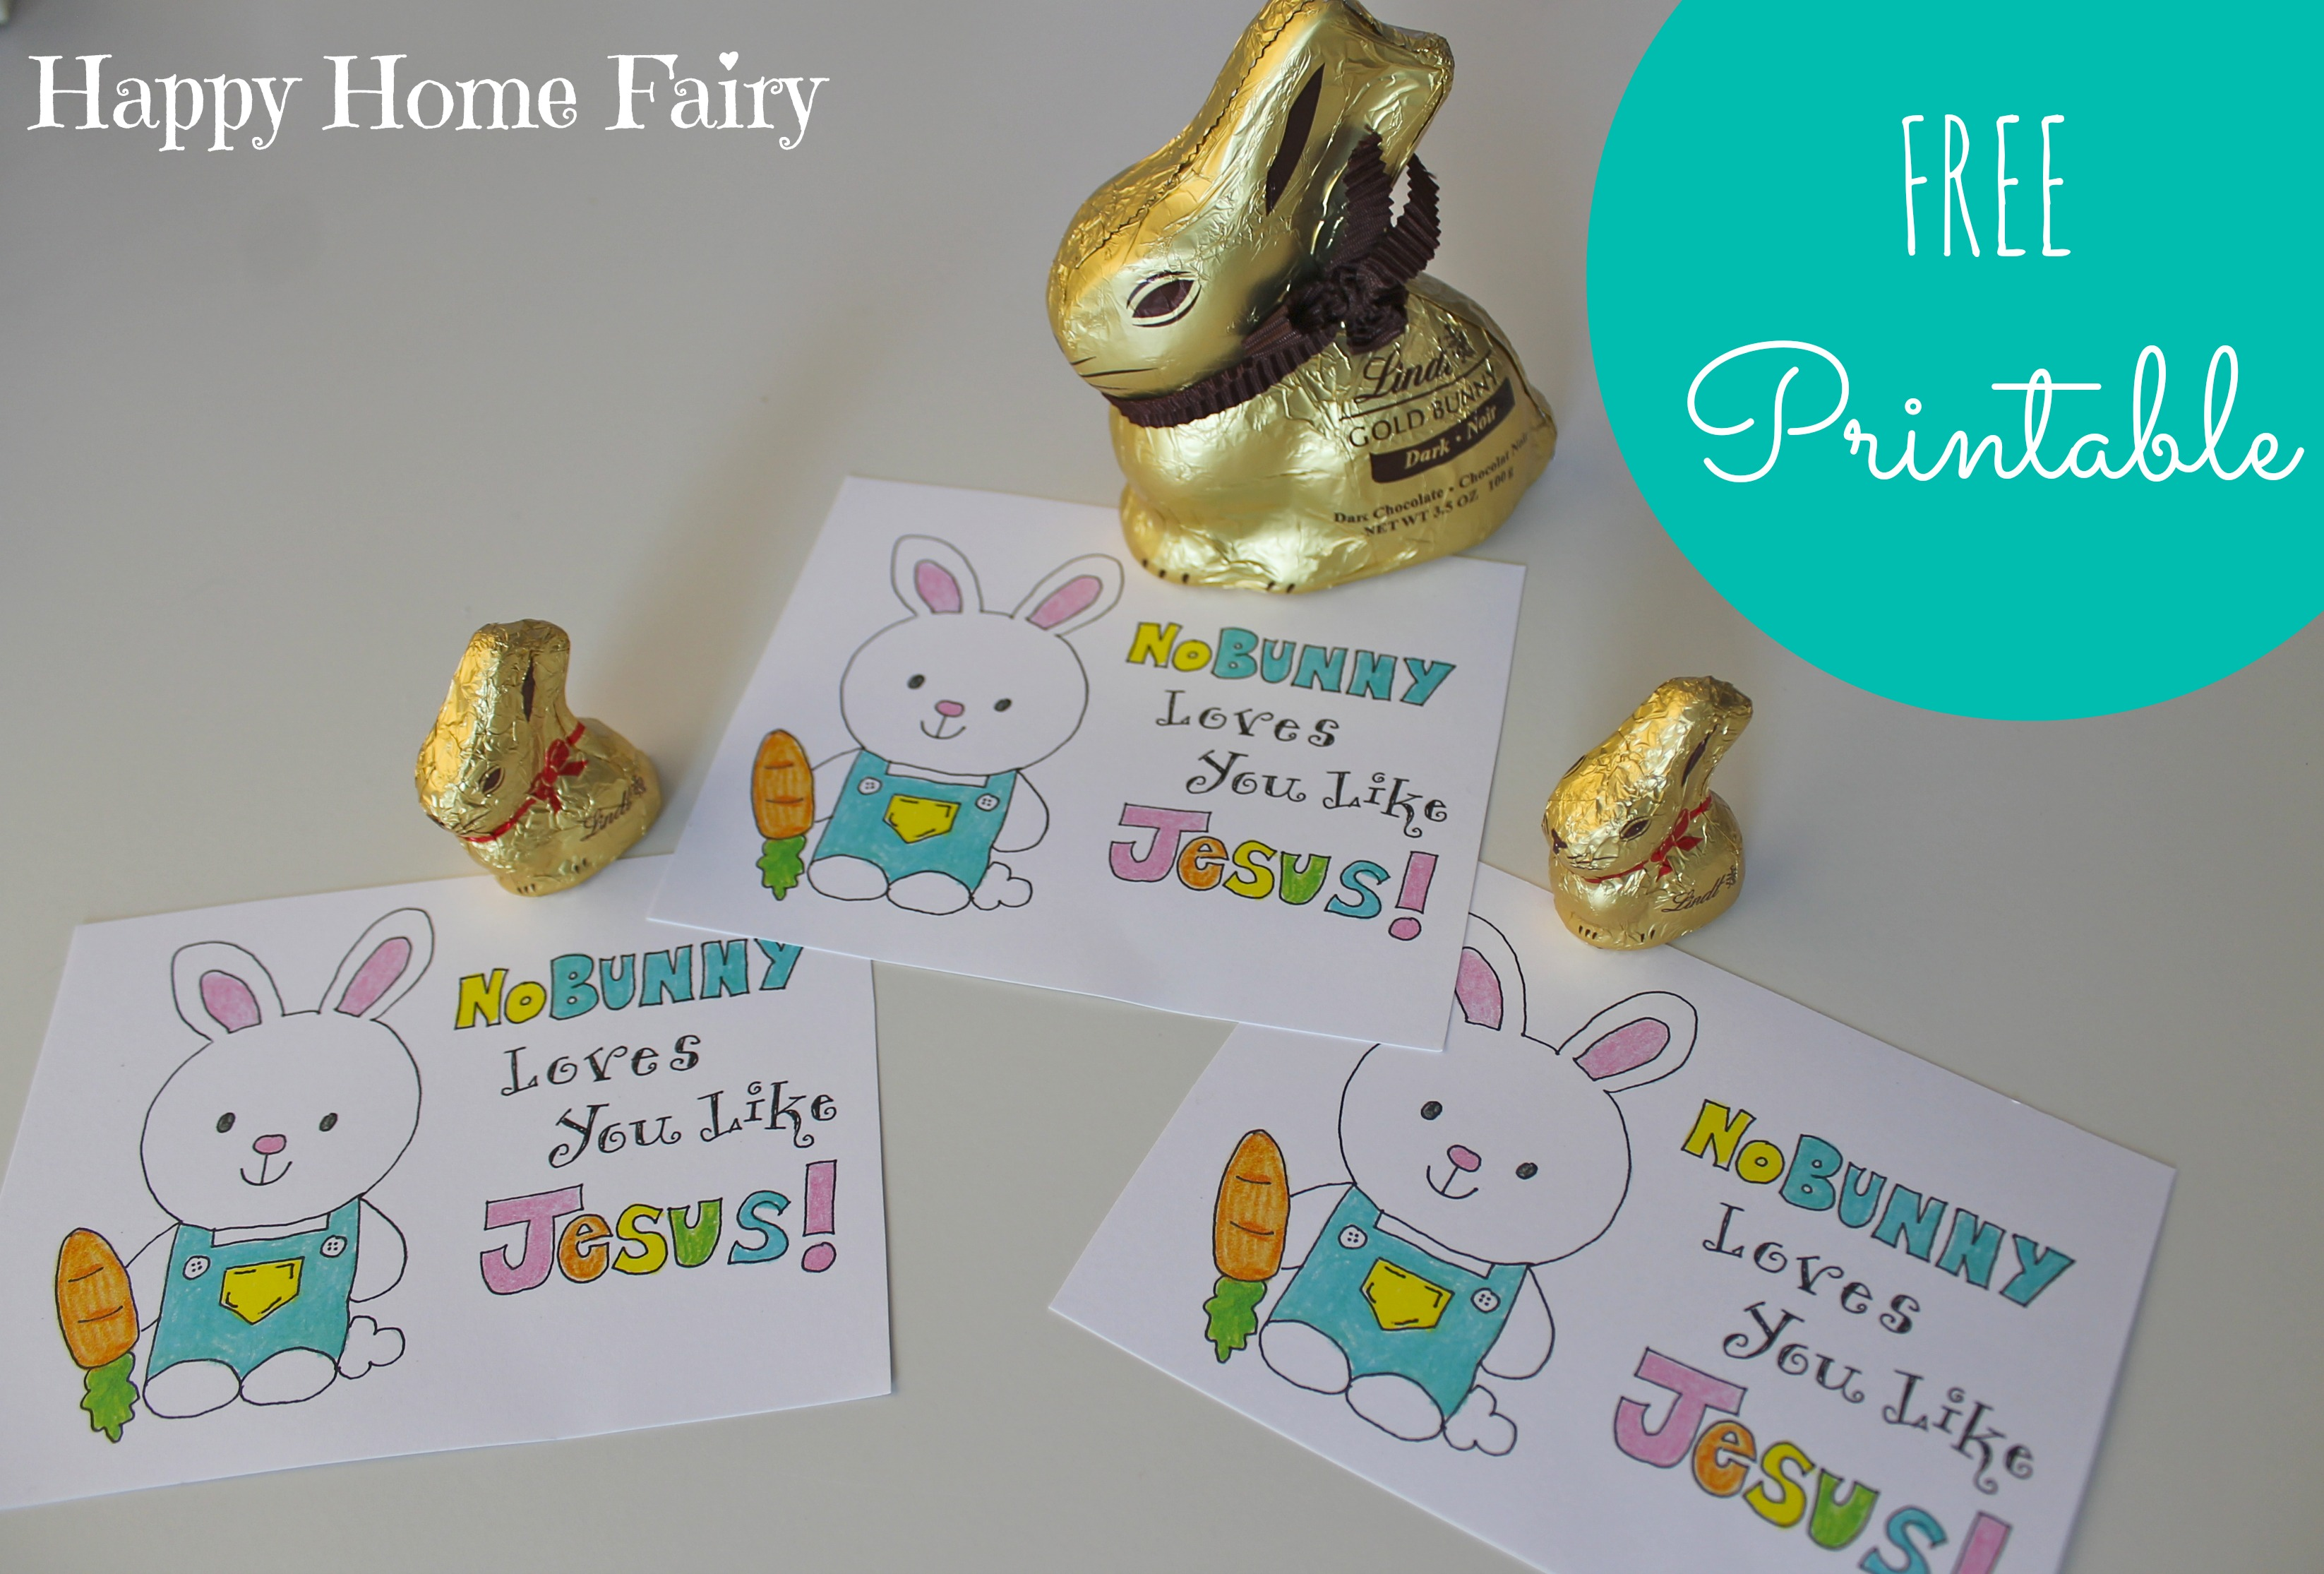 Nobunny loves you like jesus free printable happy home fairy negle Choice Image